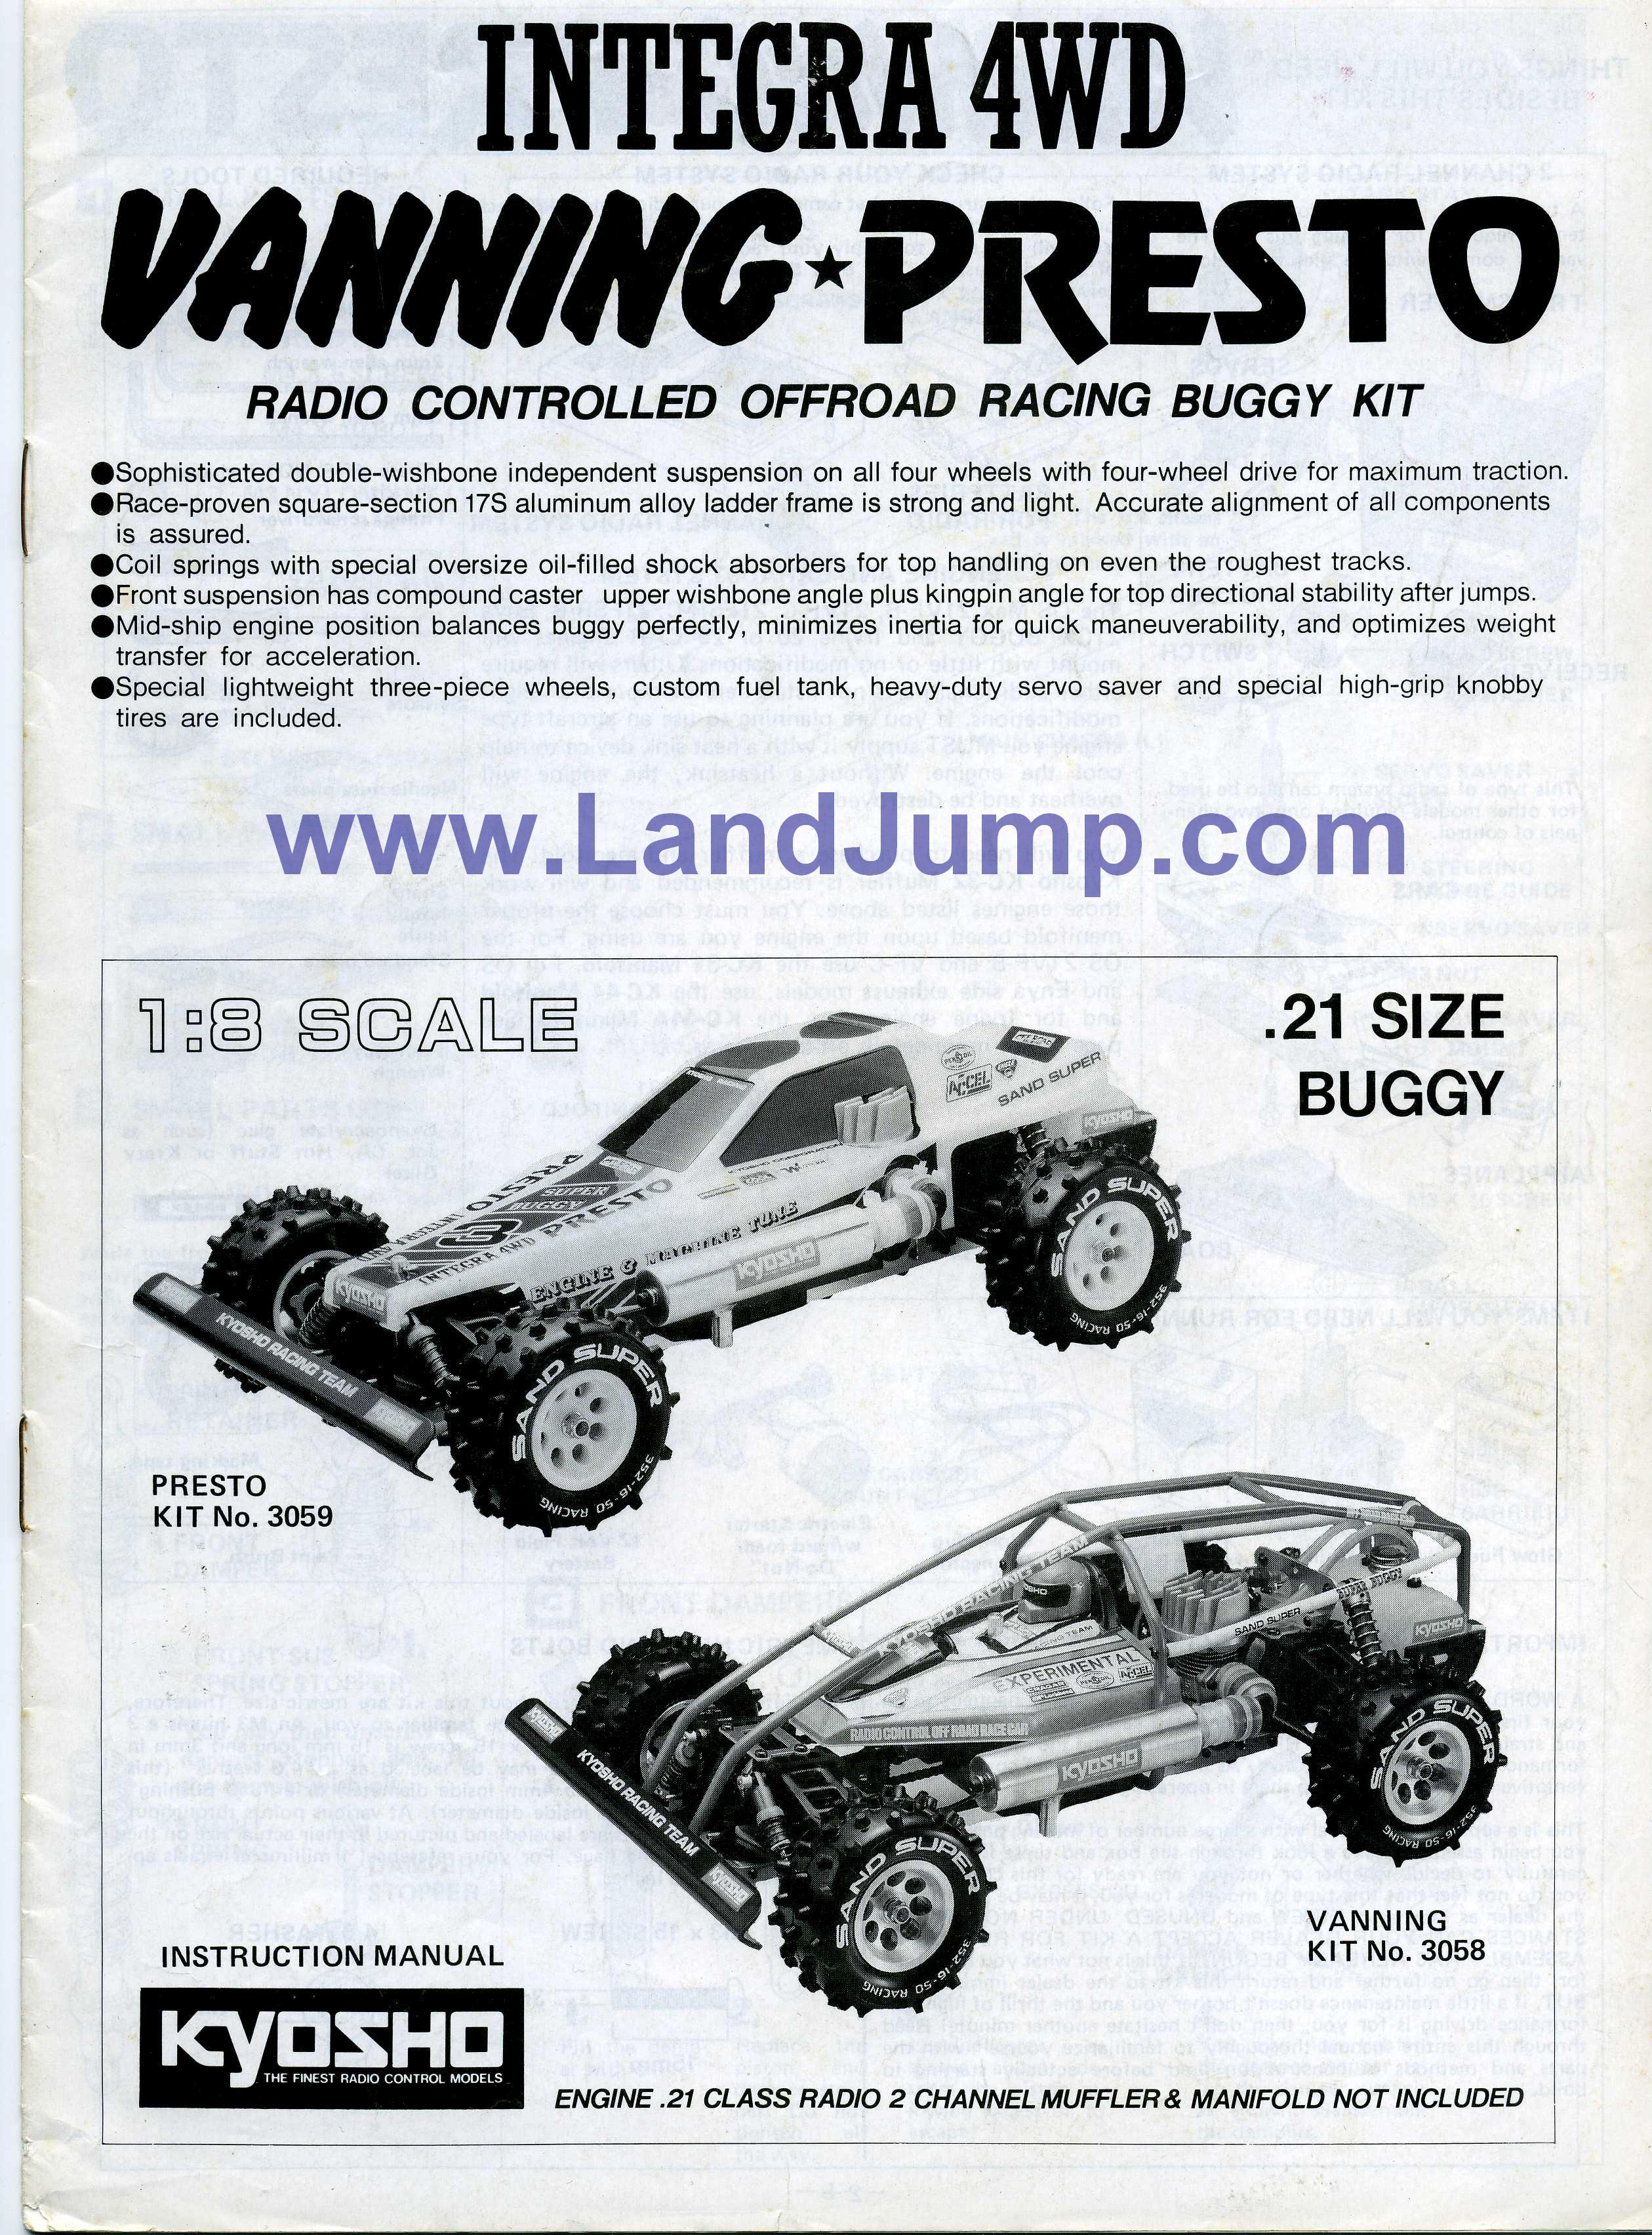 Kyosho Landjump Gas Powered 4wd Vintage Buggy Land Jump Vw Bus Engine Diagram With Wheelie Bar Vanning Mint Las Vegas Impacta Baja Rowdy And So Much More